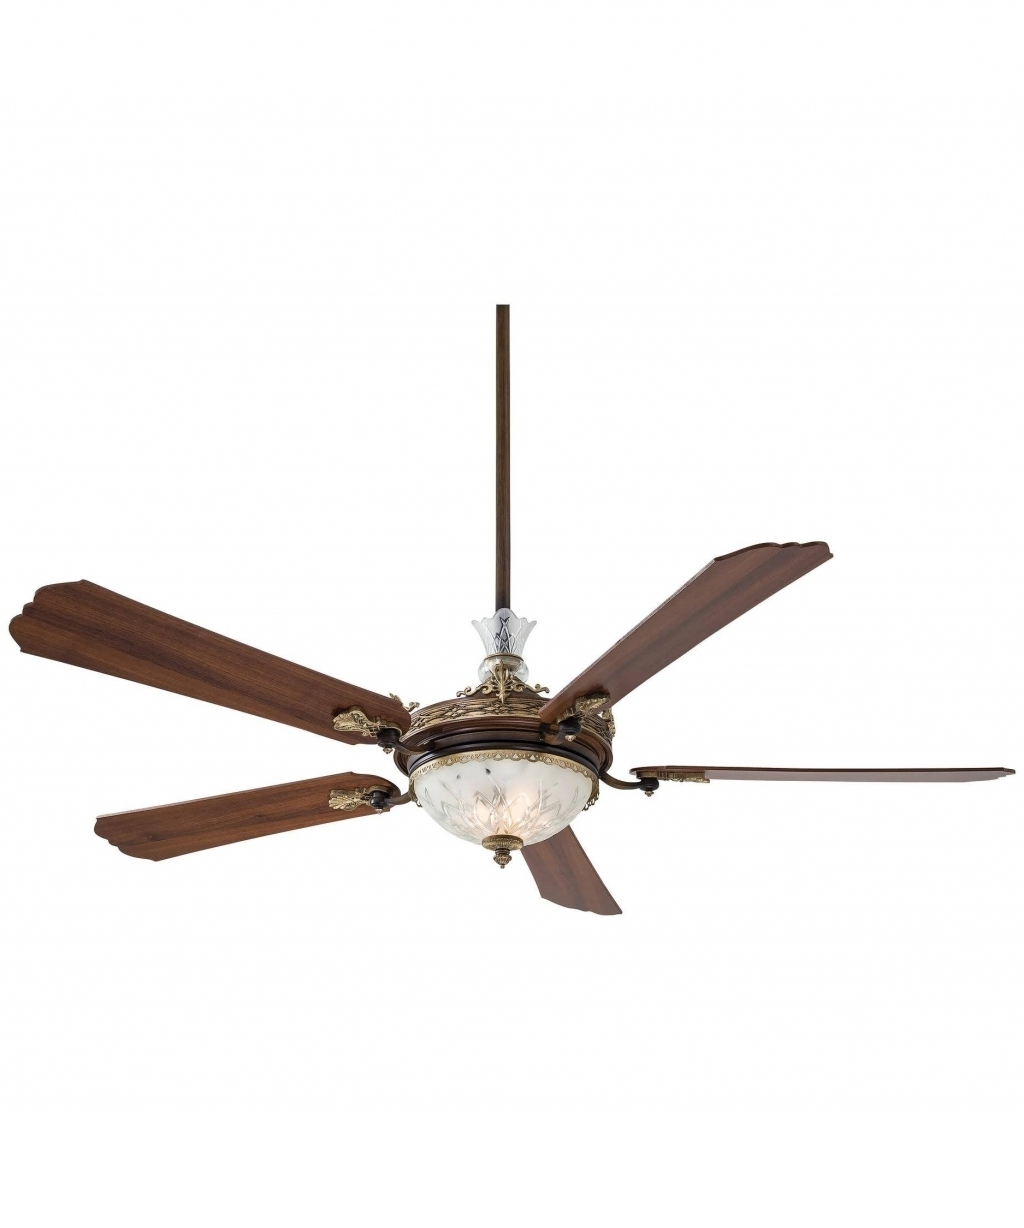 Most Current Amazon Outdoor Ceiling Fans With Lights Intended For Interior Design: Outdoor Ceiling Fans With Lights Glamorous (View 13 of 20)